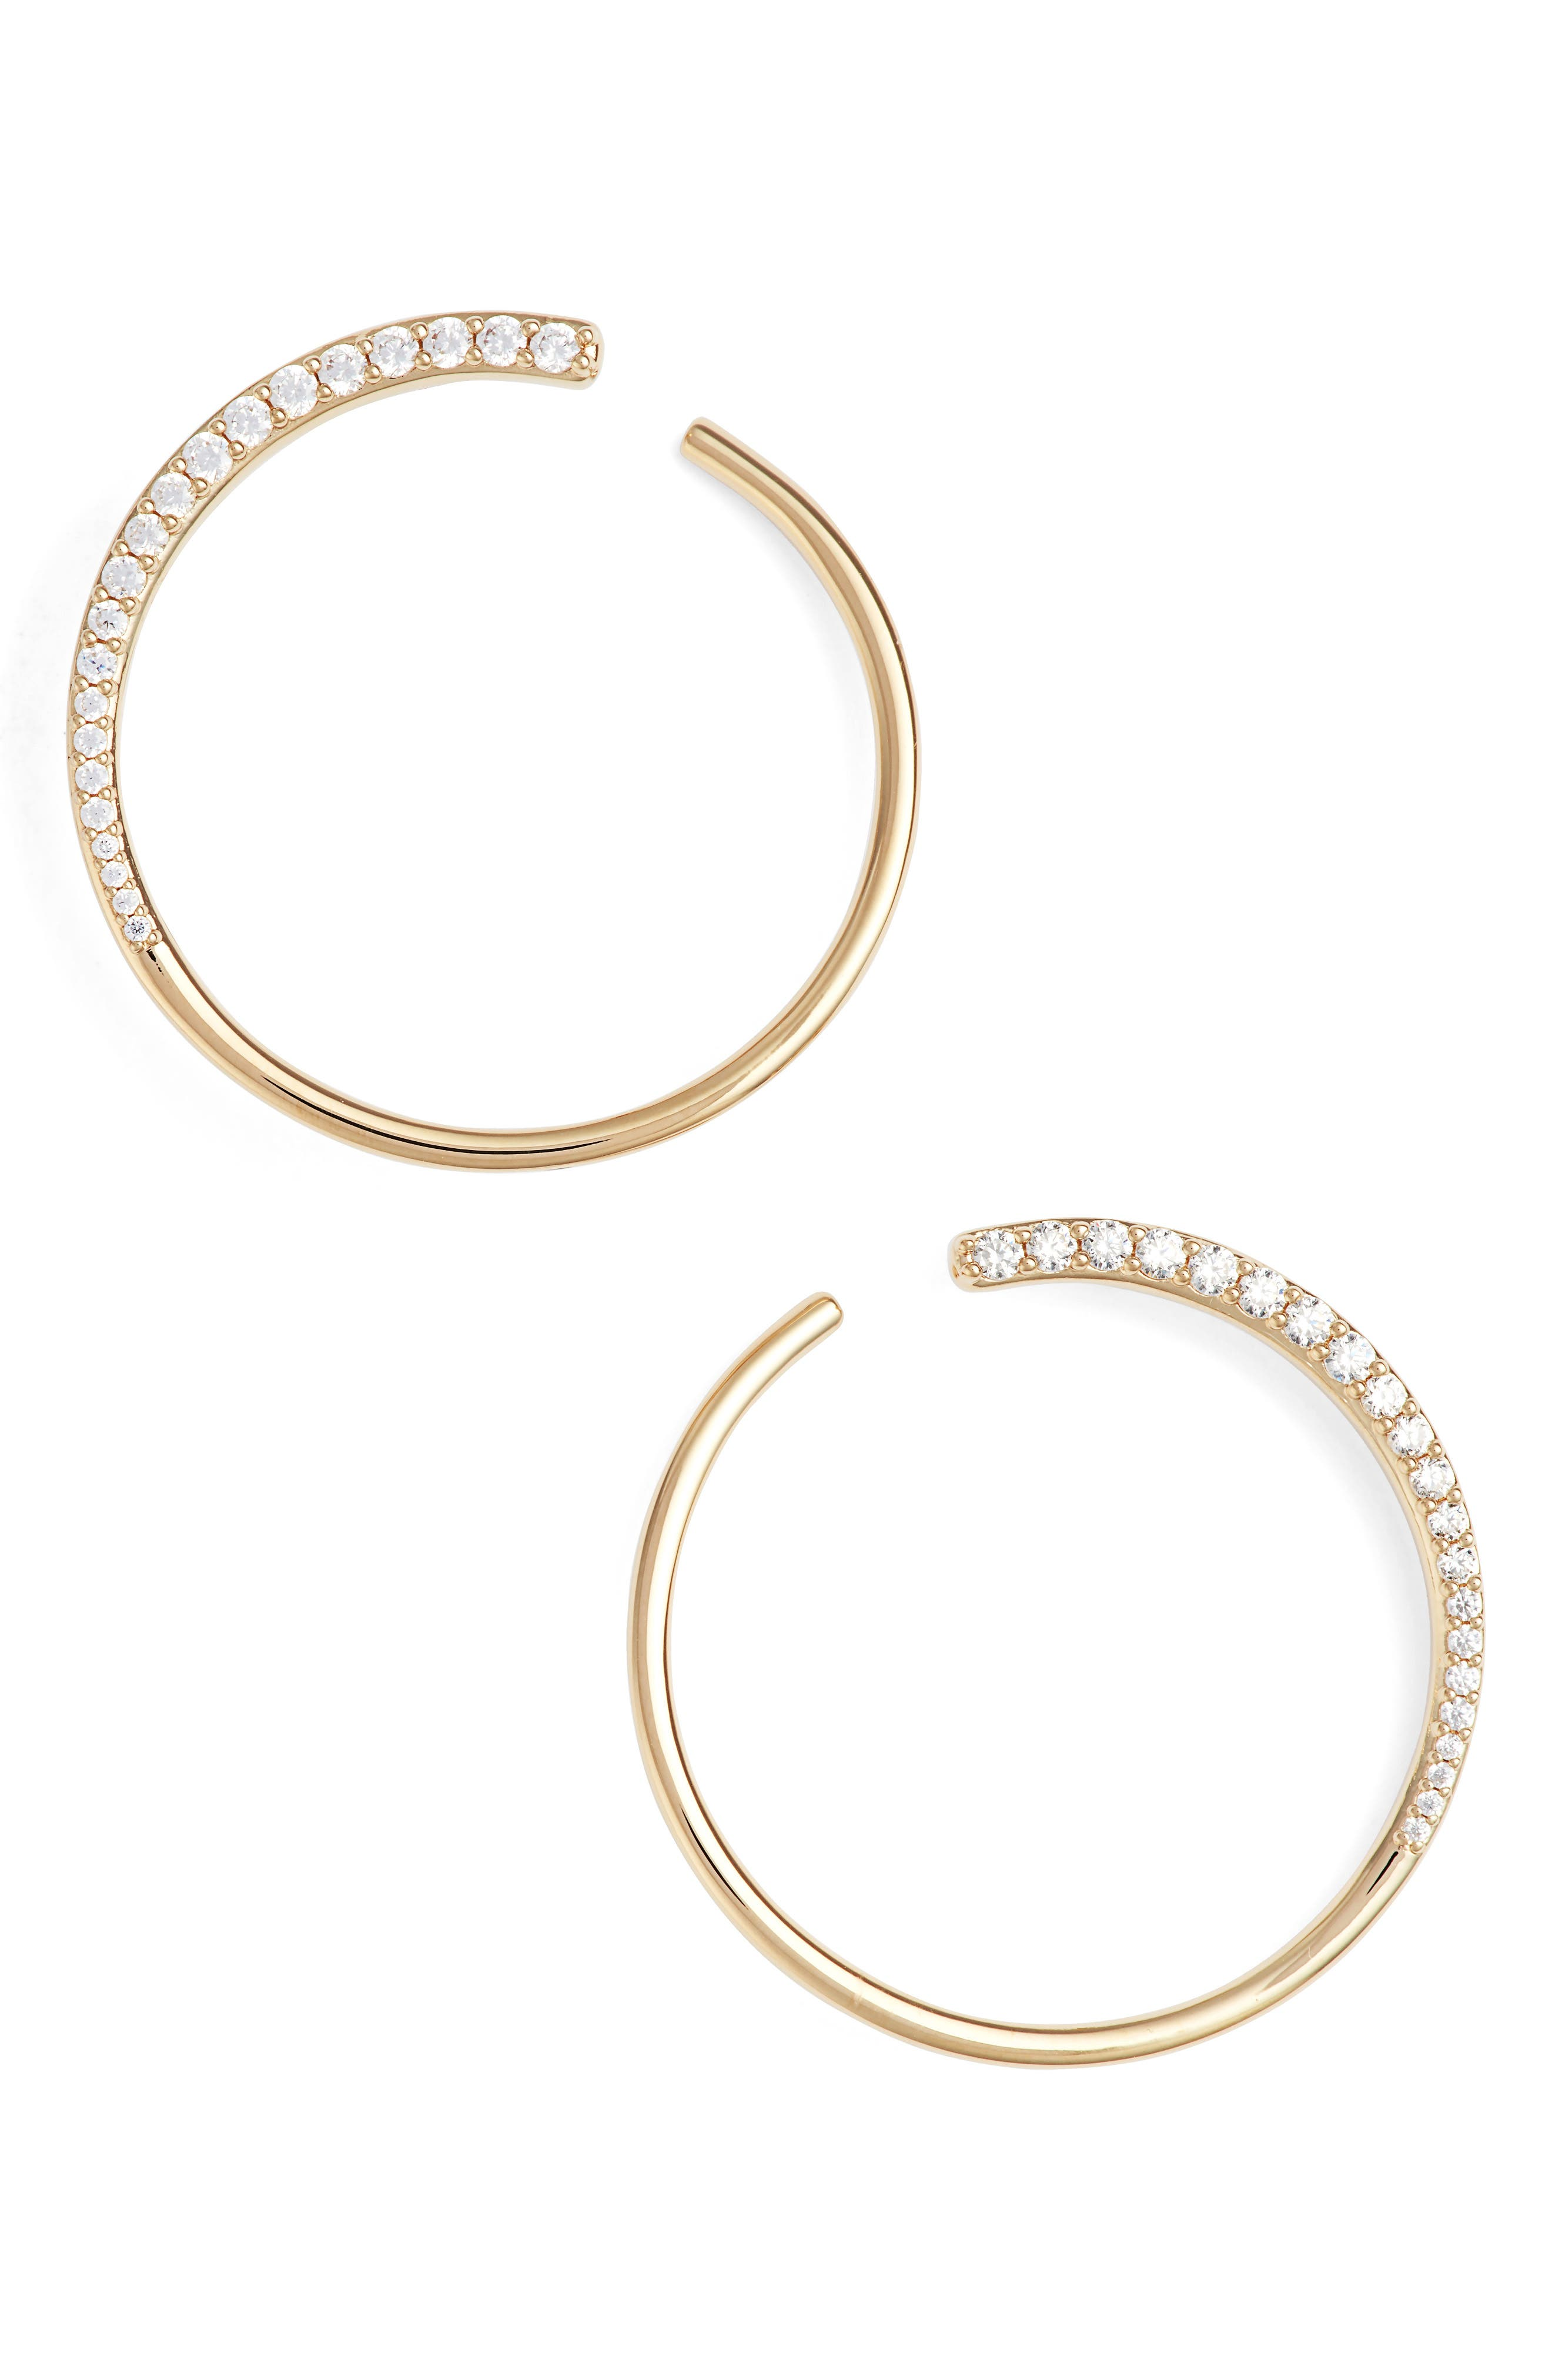 Half Sparkle Hoops,                         Main,                         color, Gold/ Clear